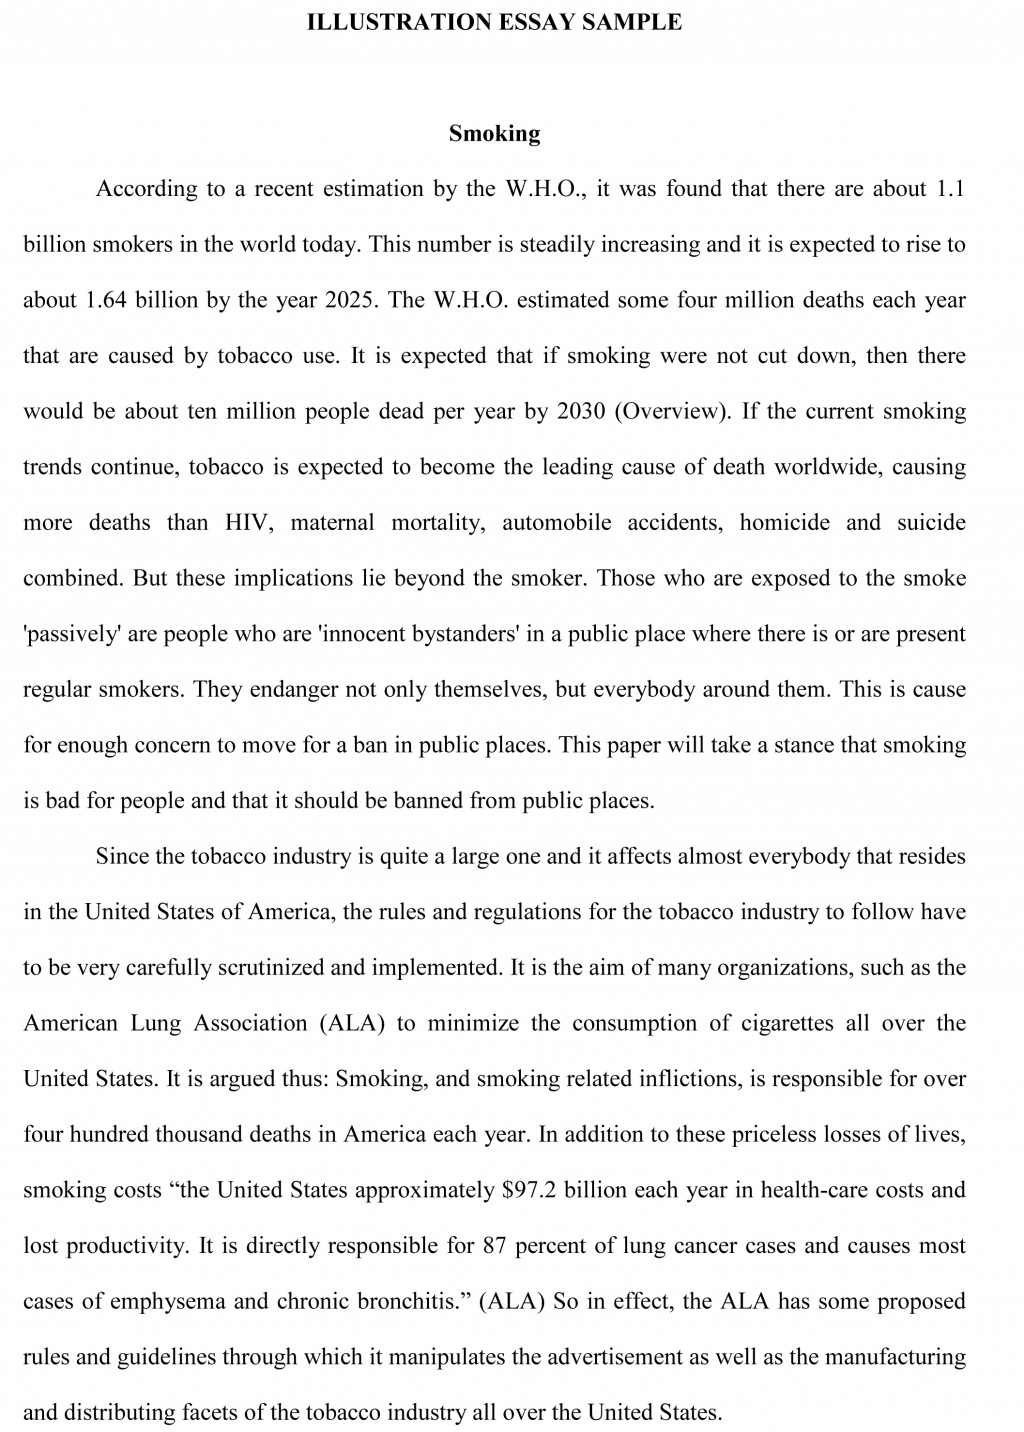 007 Essay Example Illustration Sample Act Fearsome Examples Good Score To Use Large